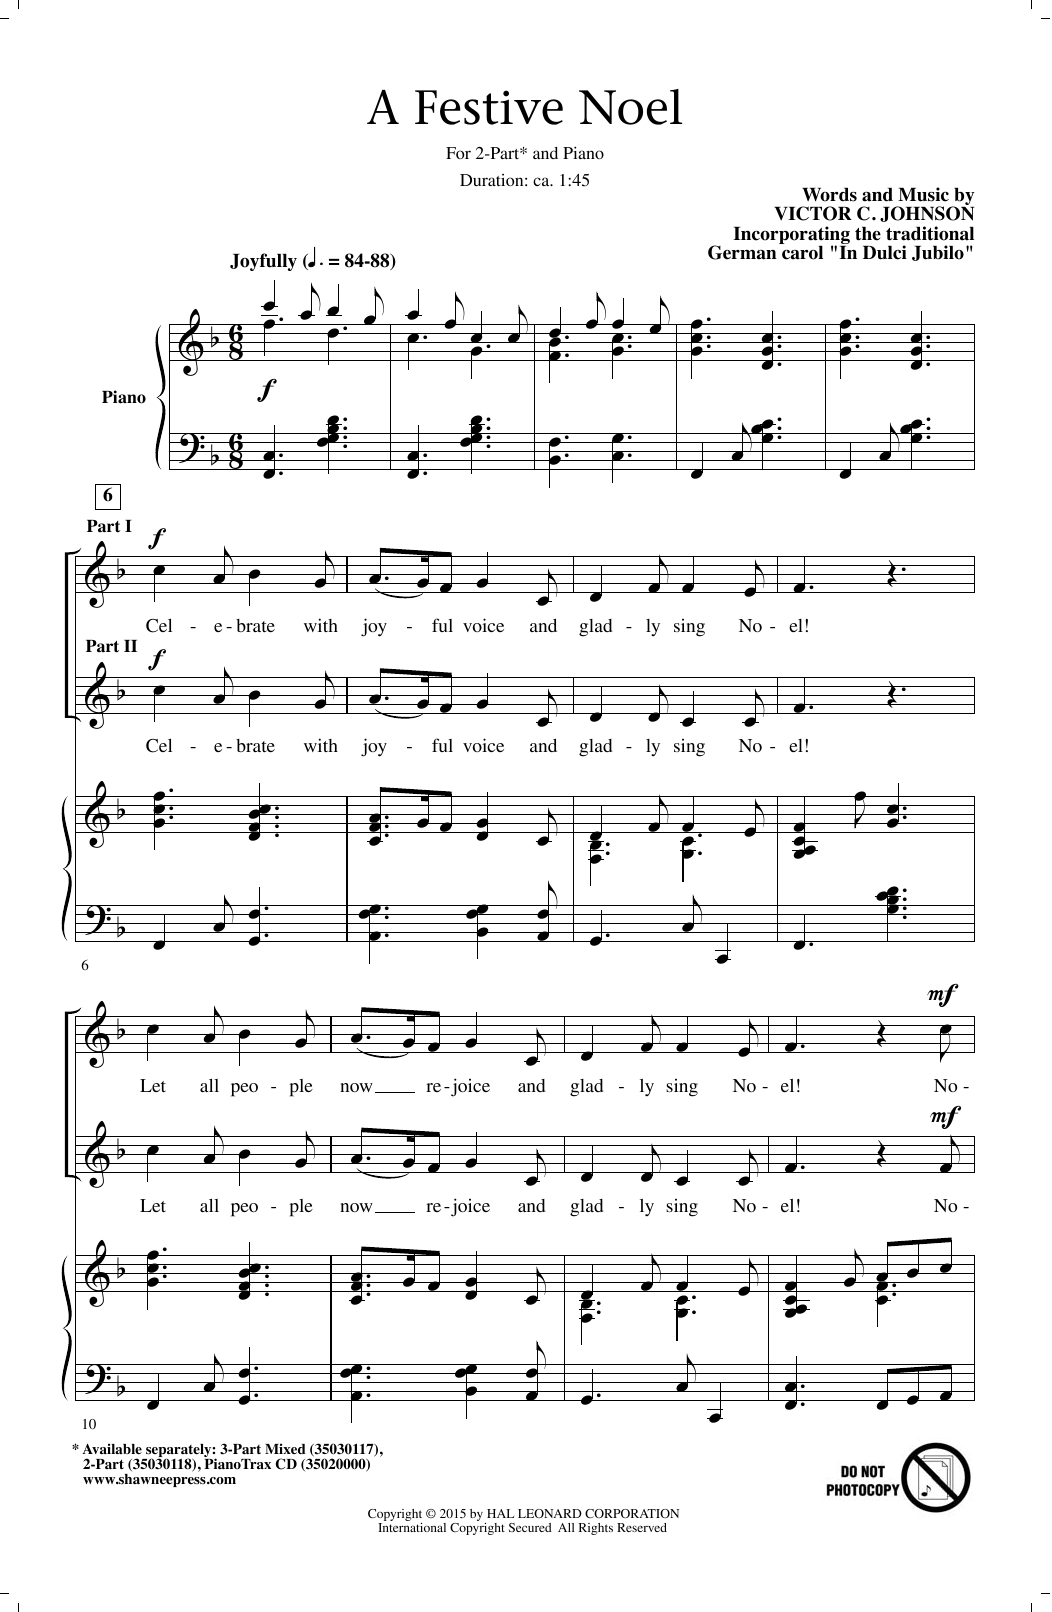 Victor C. Johnson A Festive Noel sheet music notes and chords. Download Printable PDF.